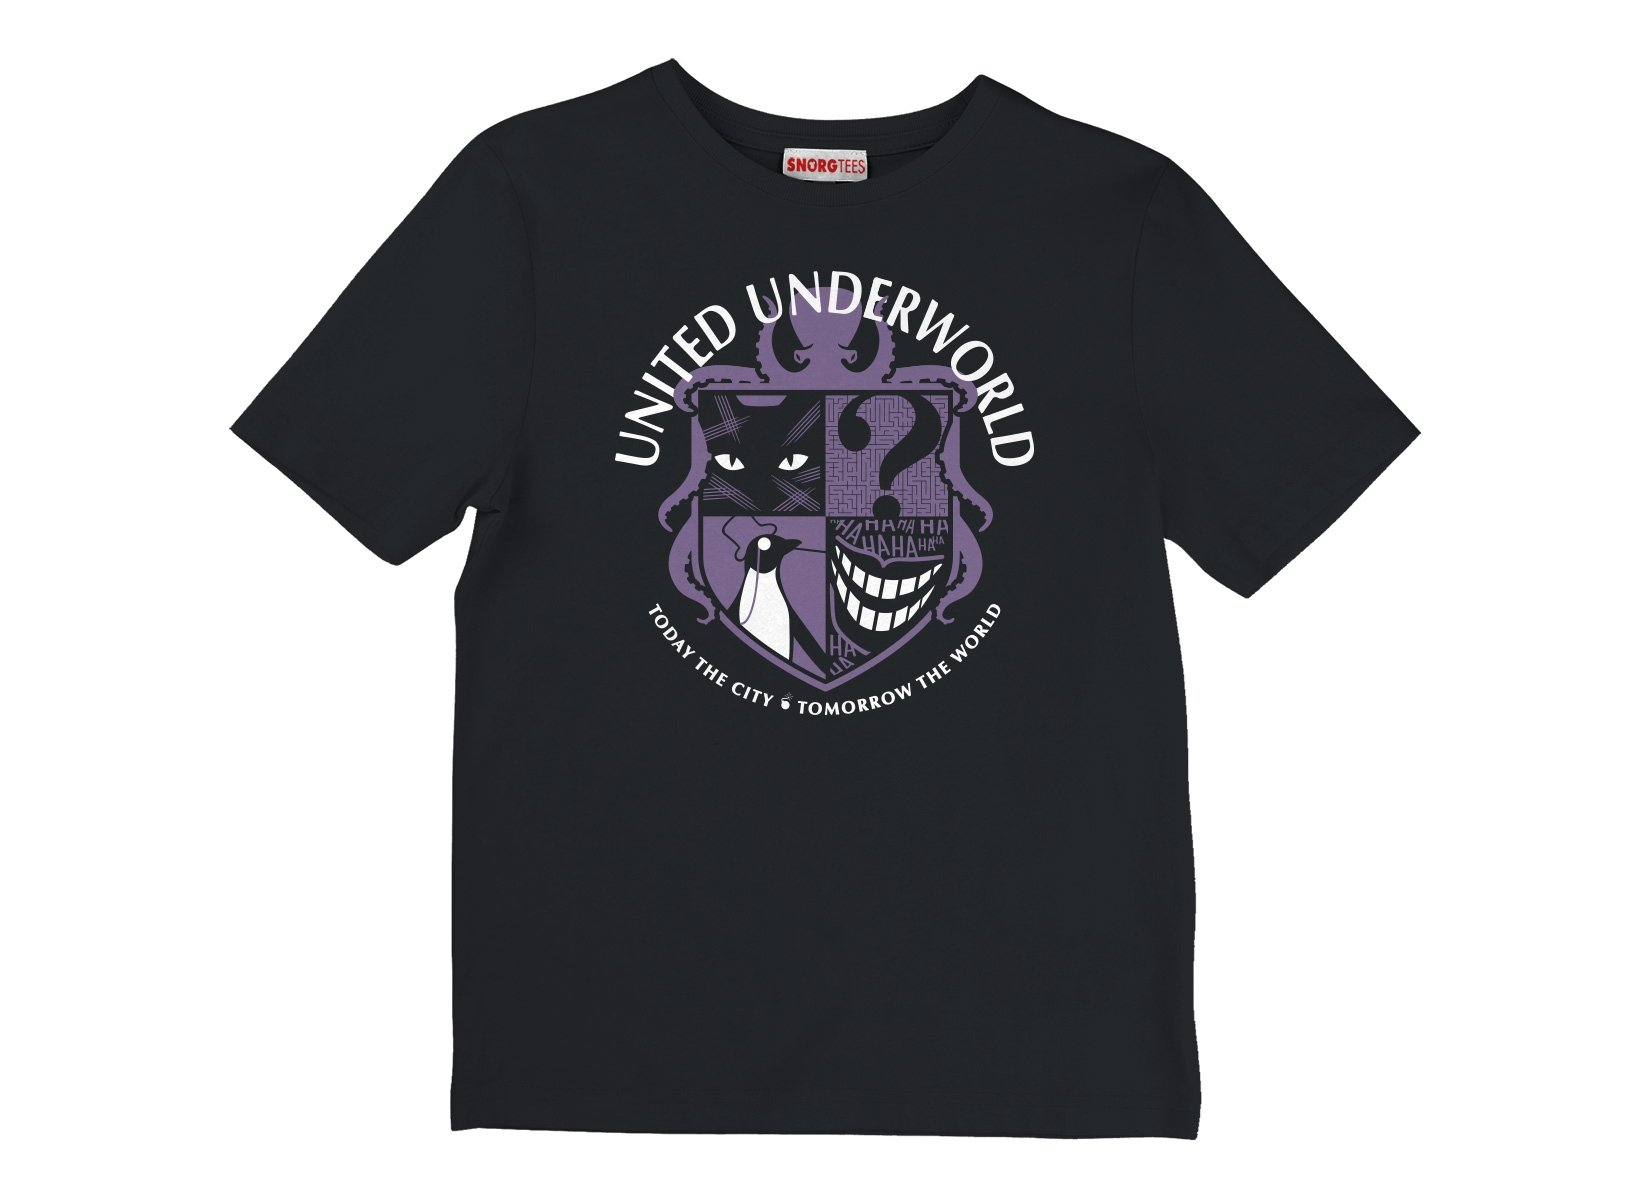 United Underworld on Kids T-Shirt